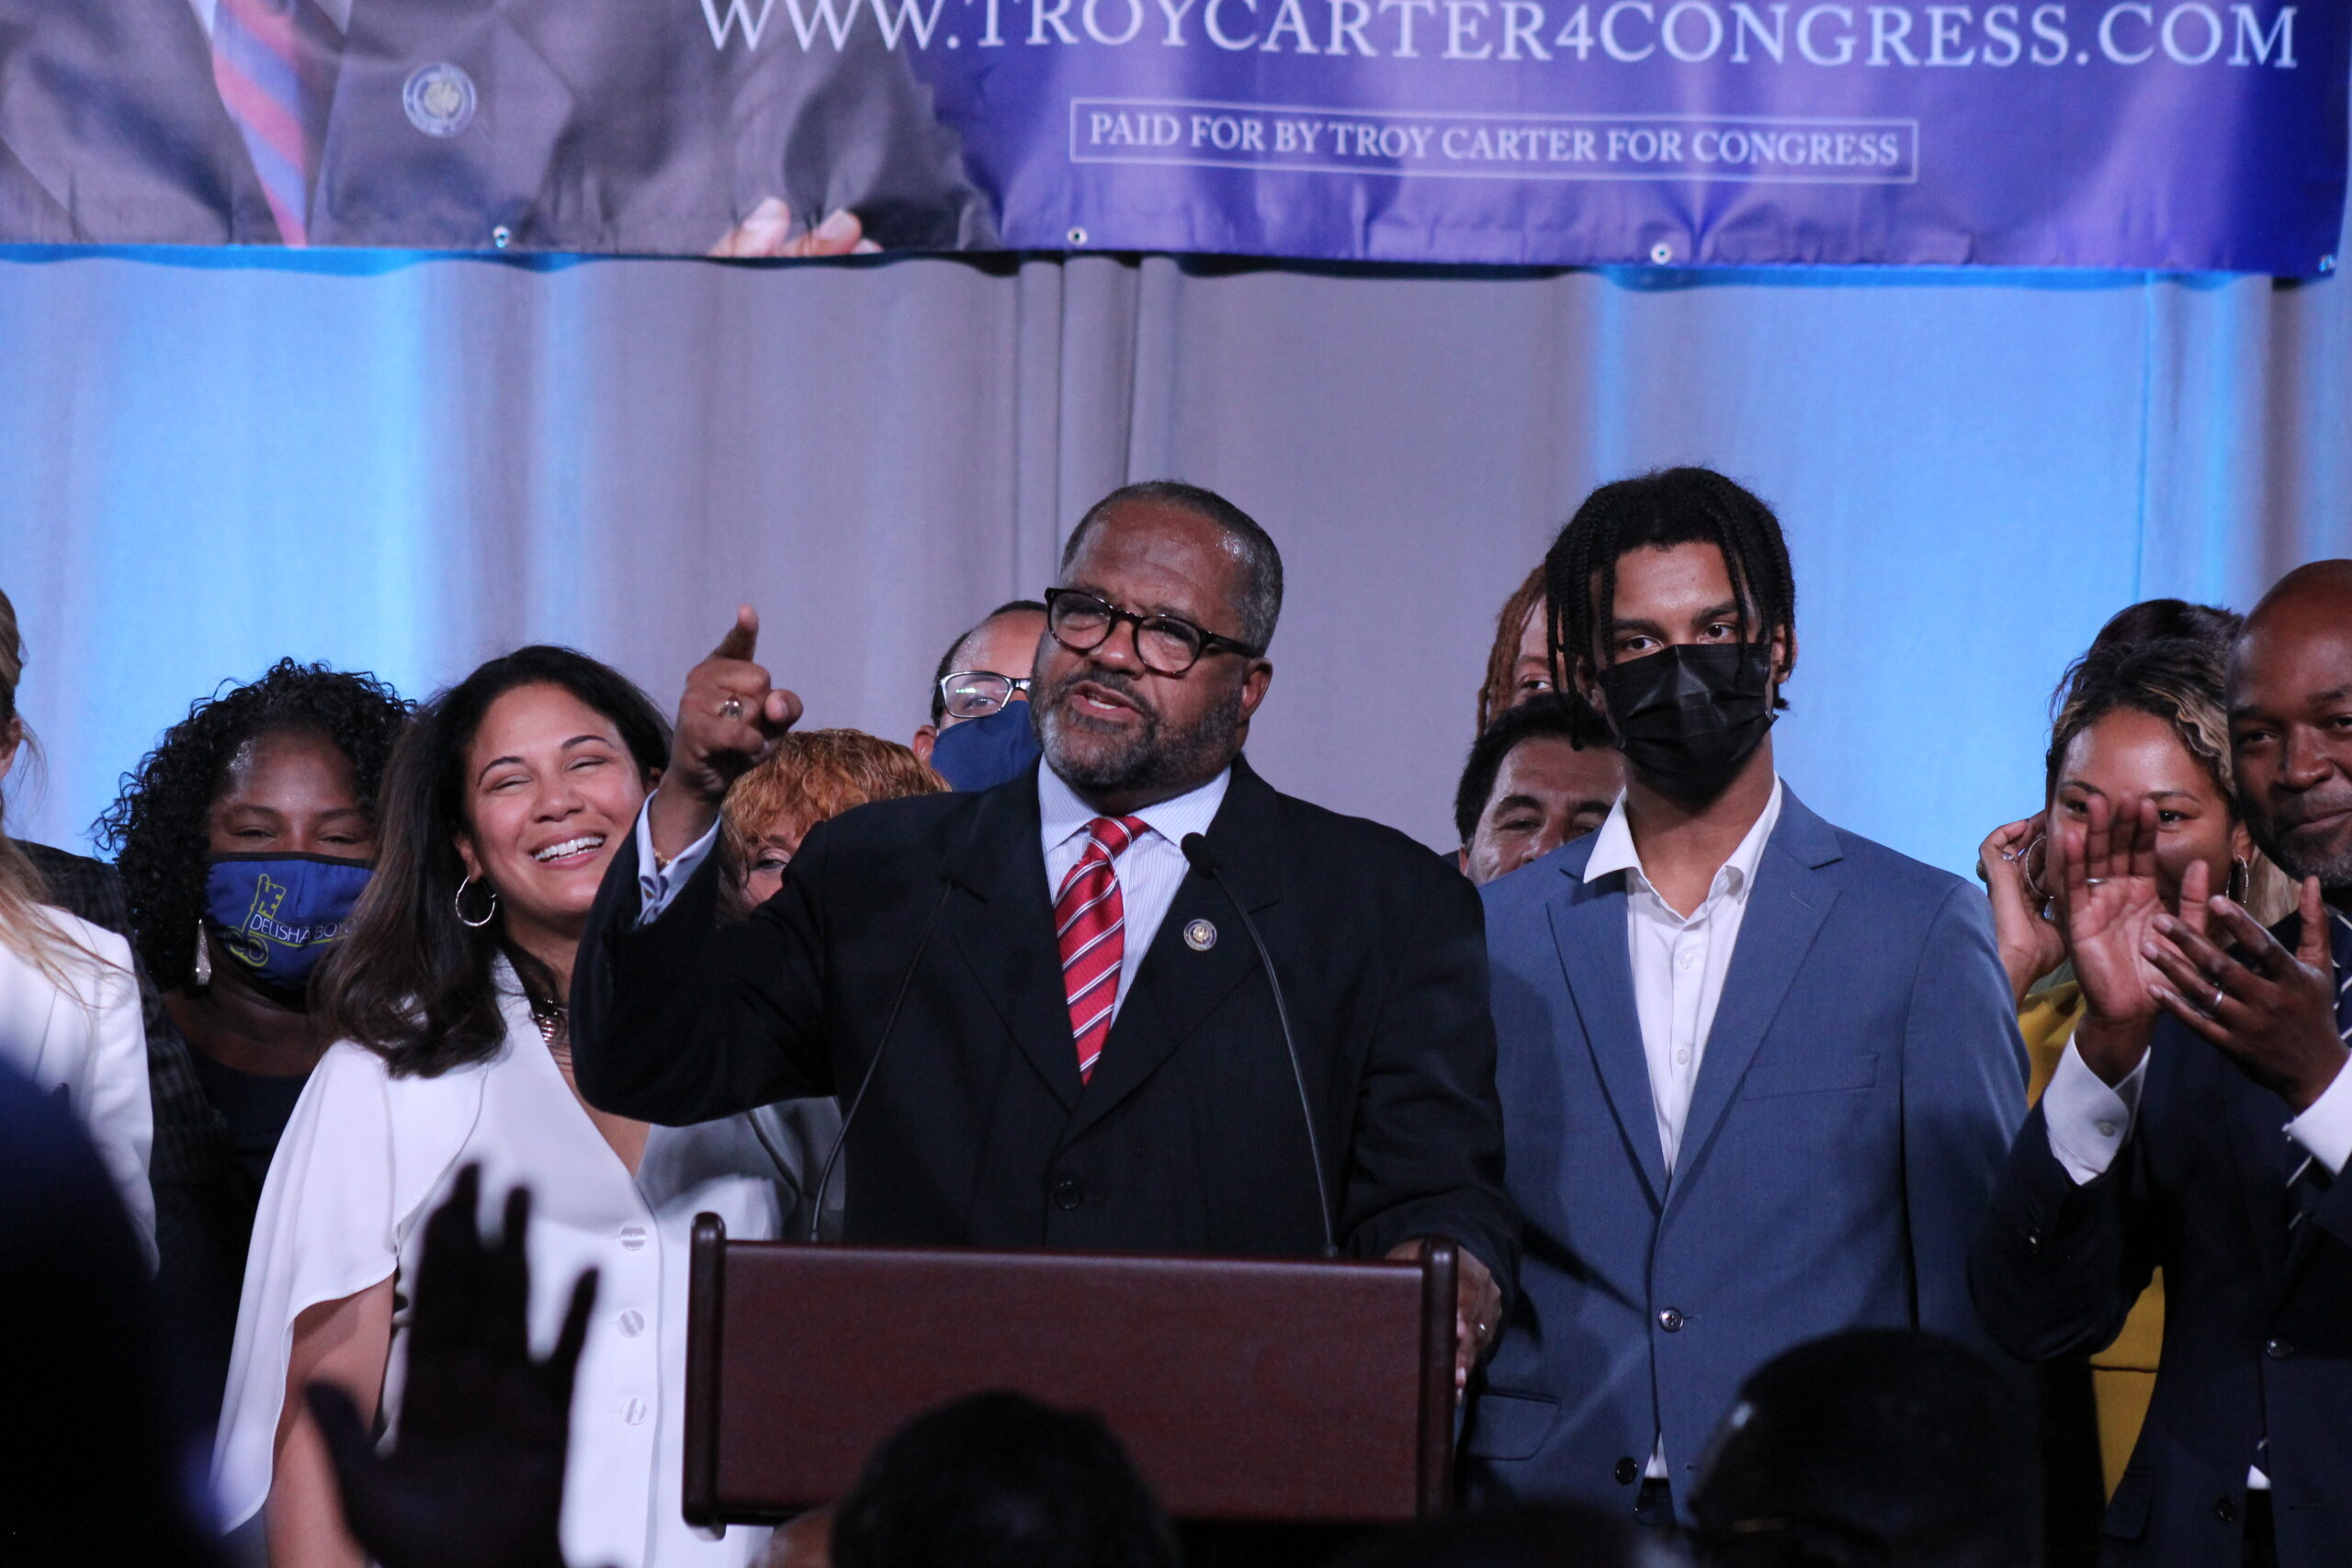 Troy Carter elected to U.S. Congress